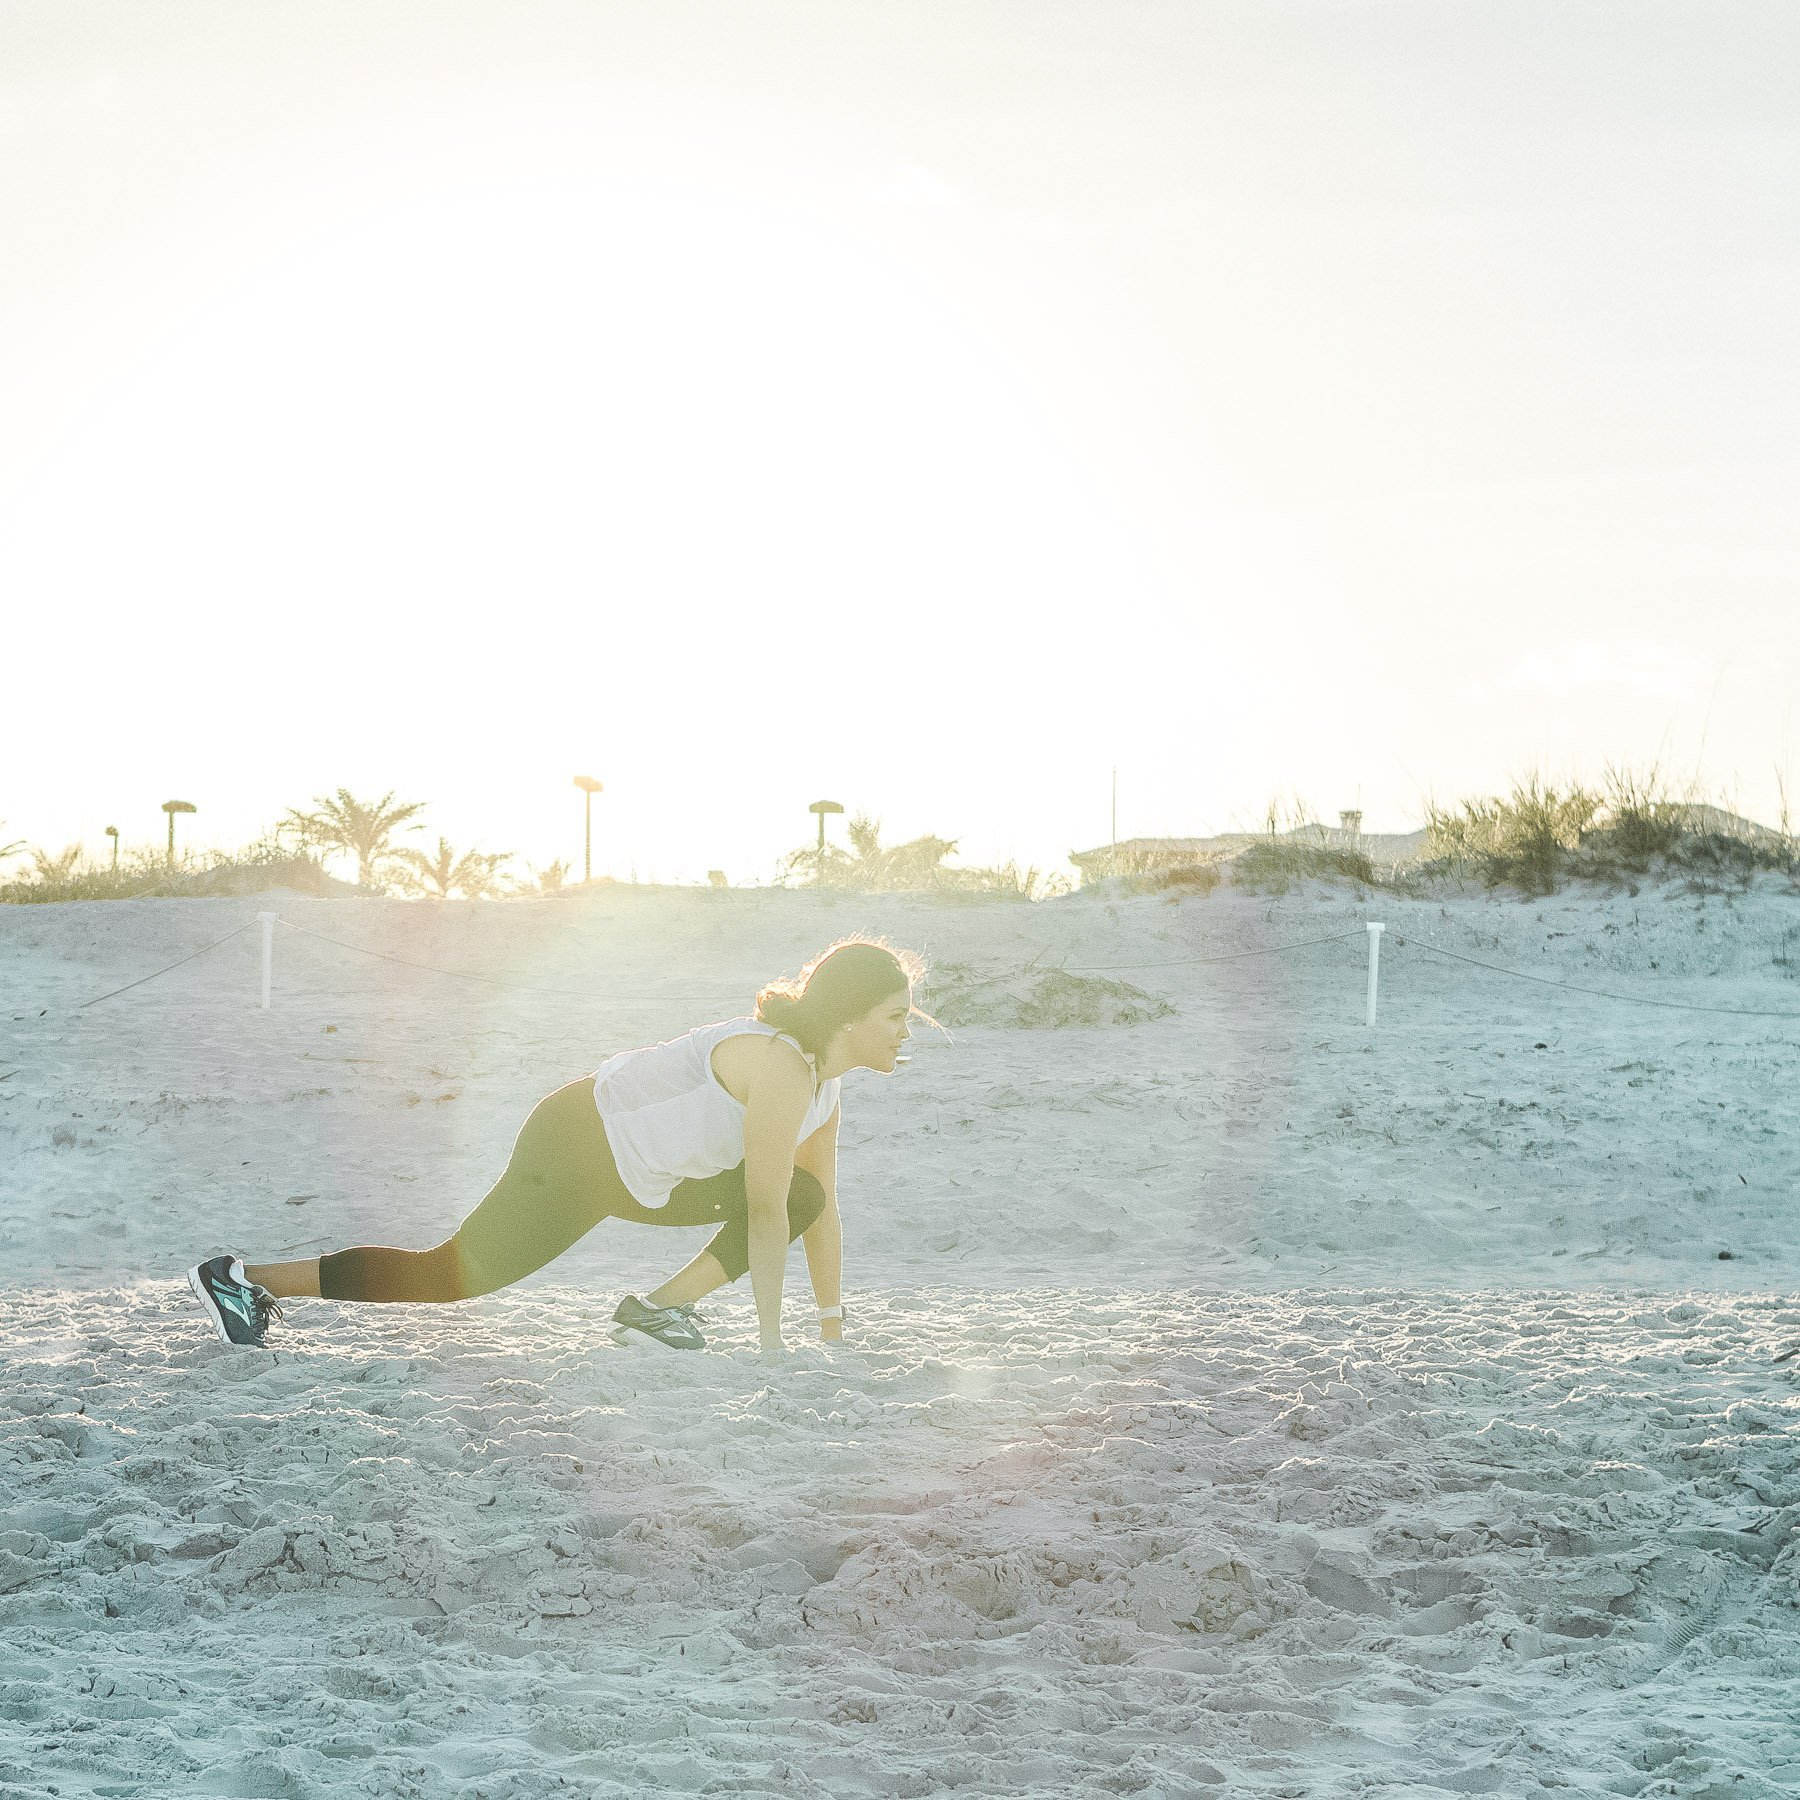 woman in sprint position at beach with solar flare behind her